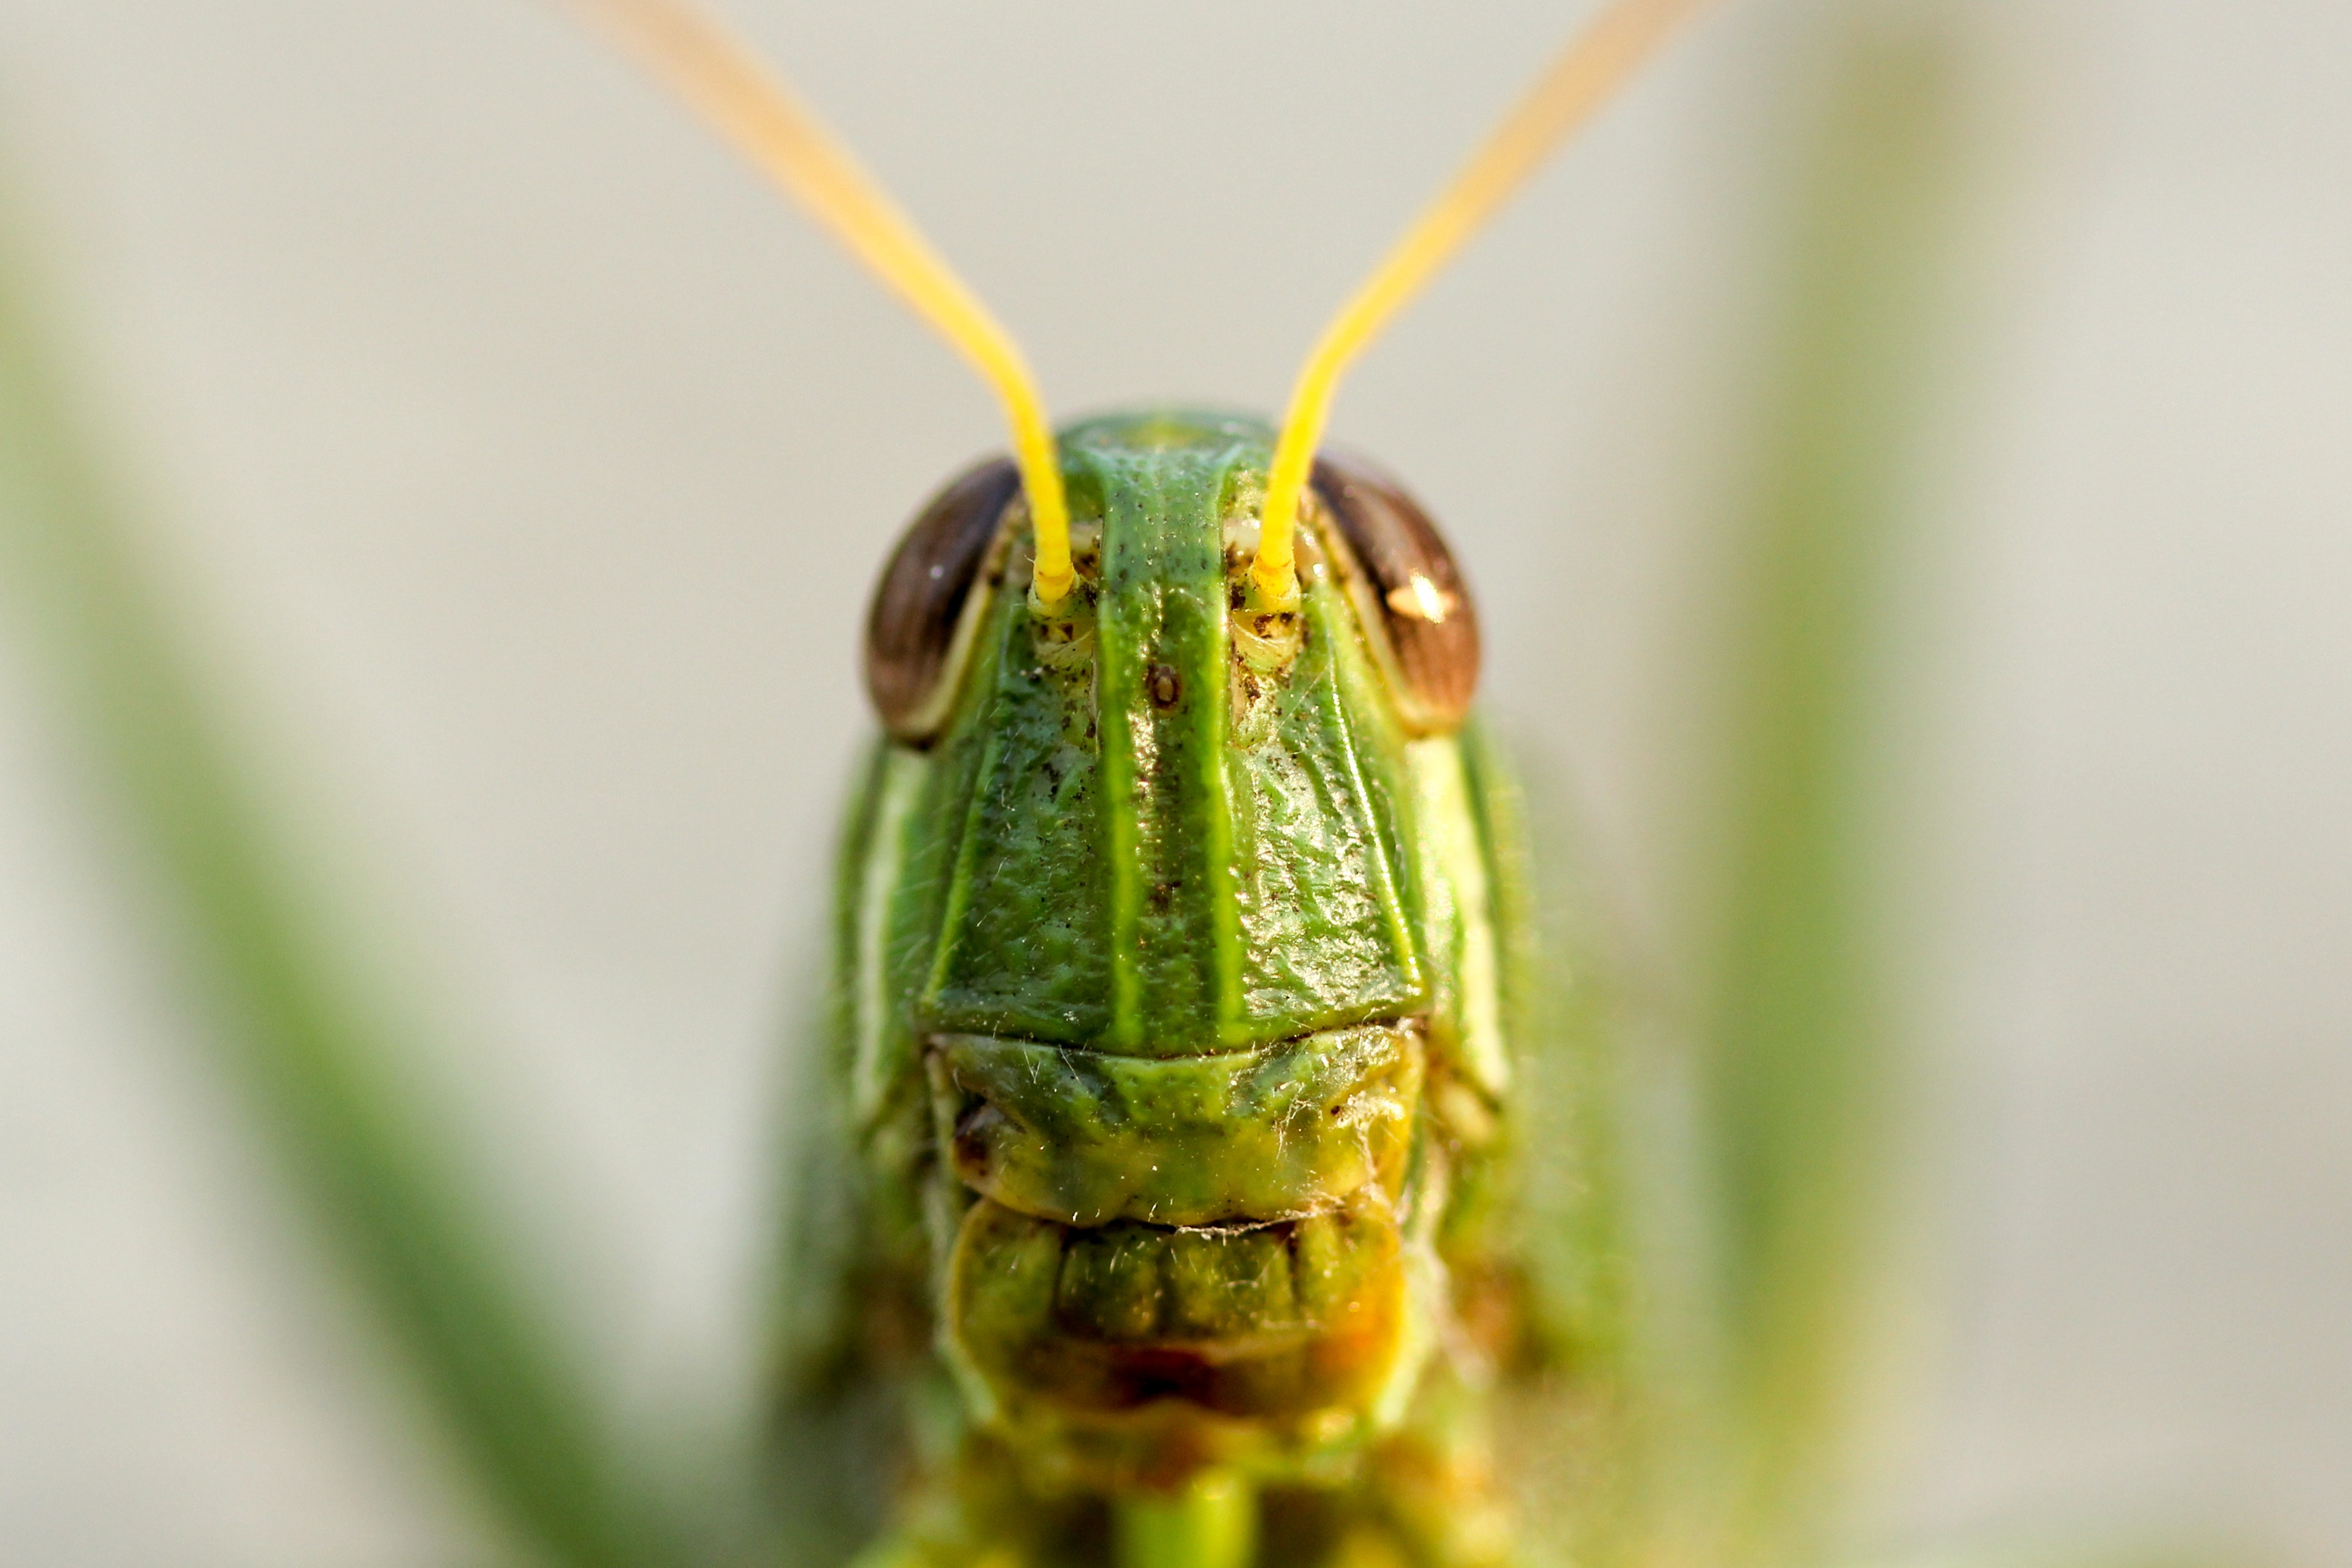 grasshopper, insect, bugged